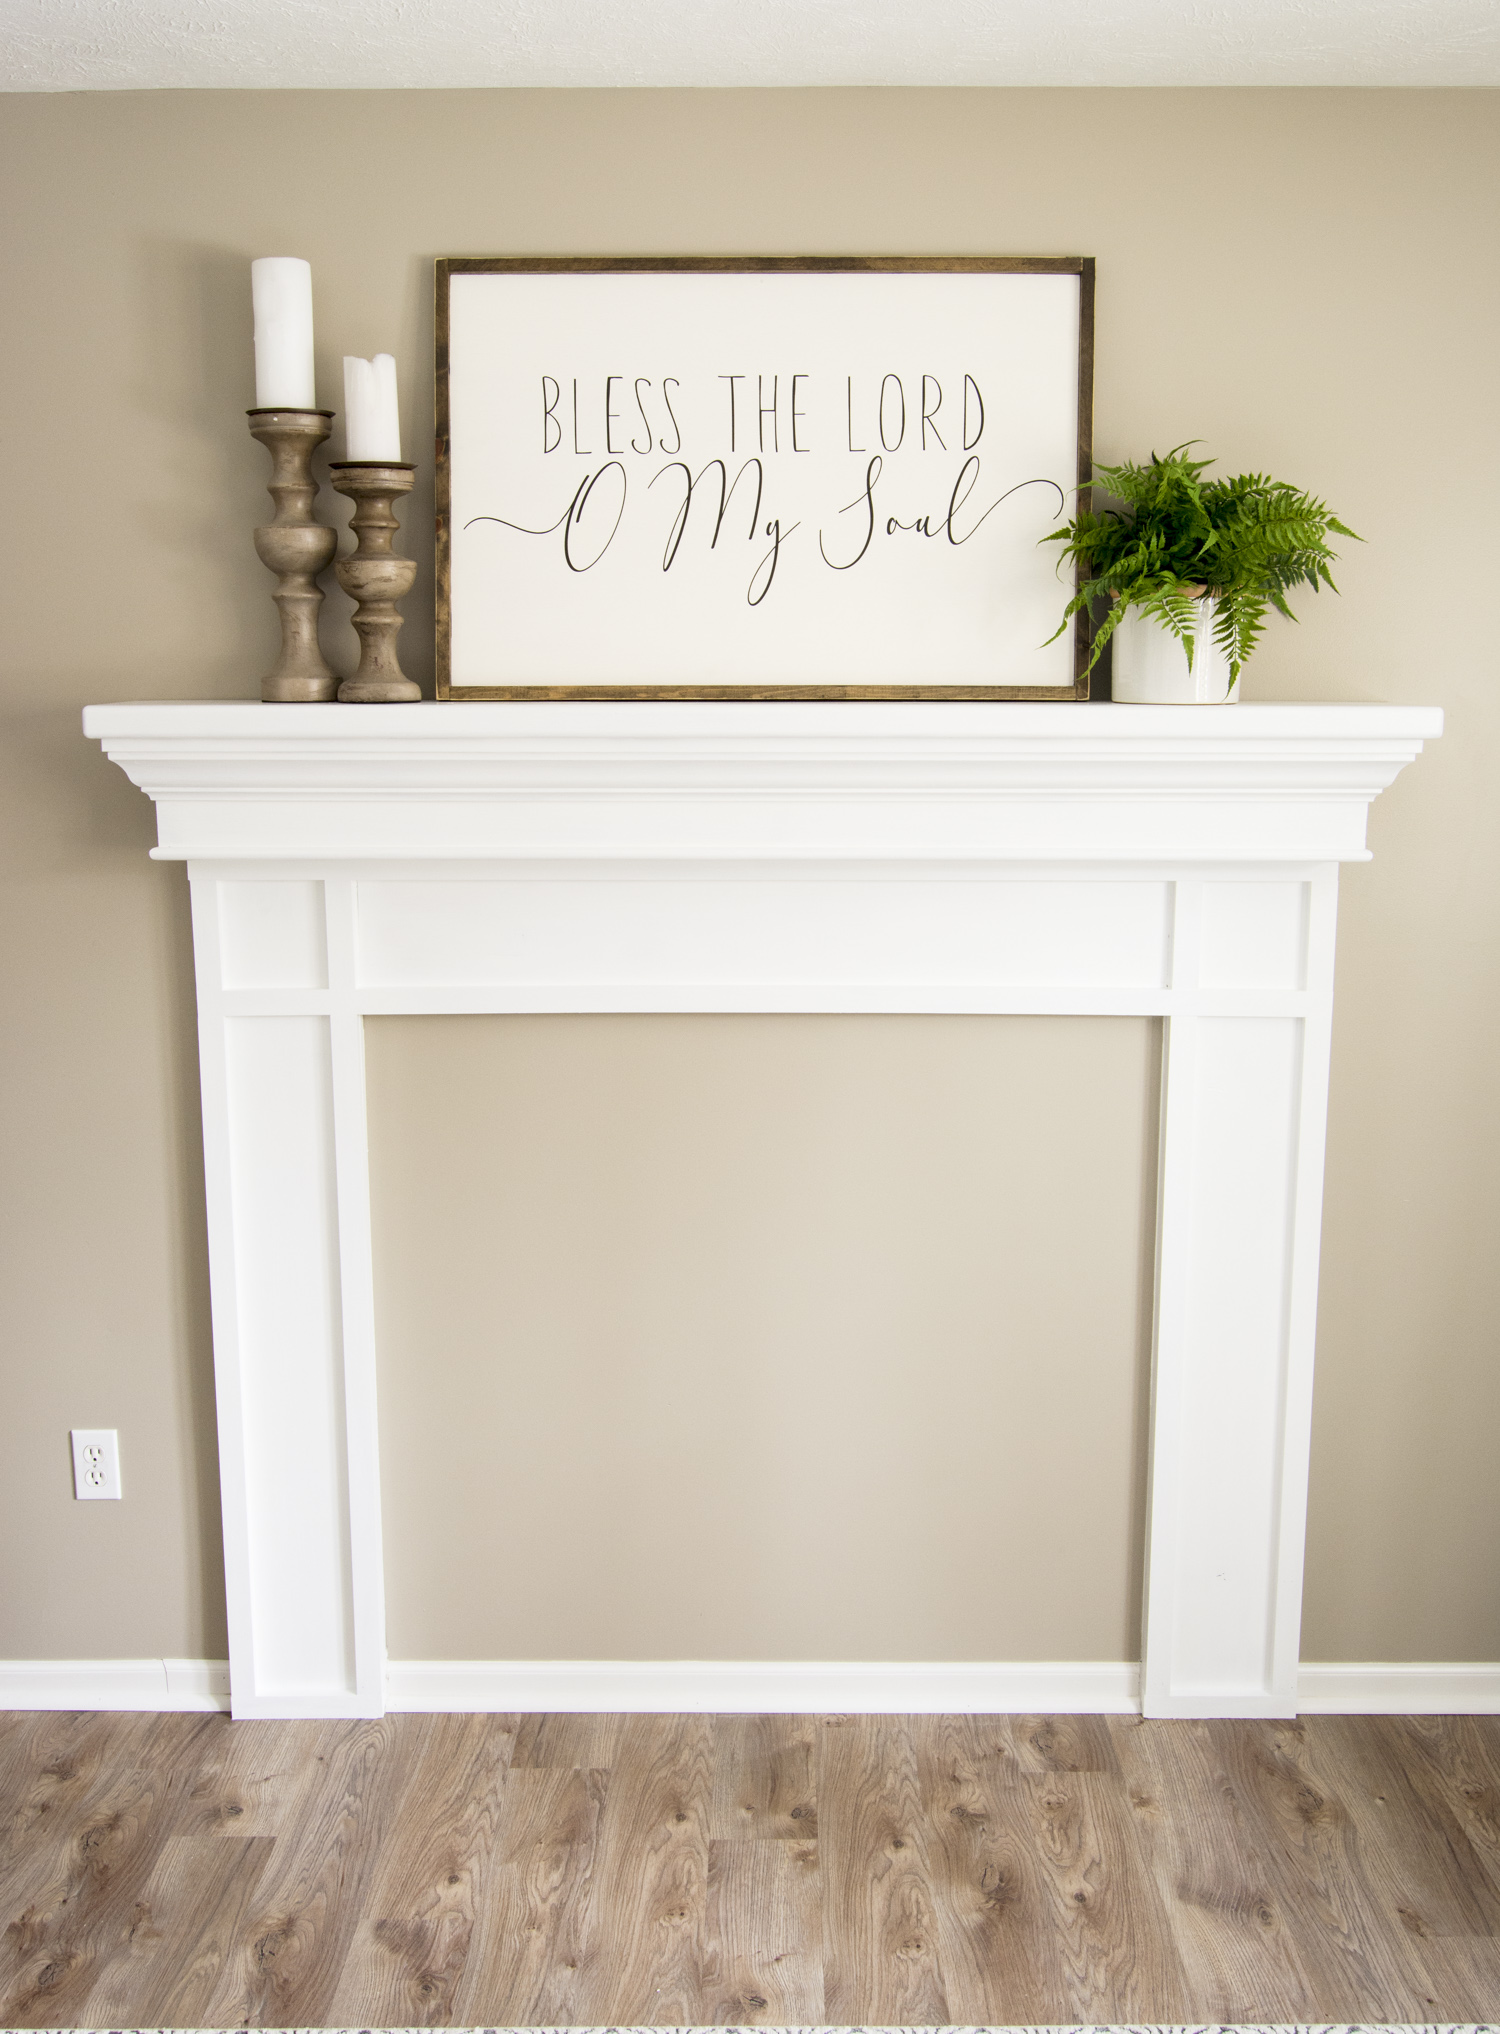 DIY Fireplace mantel plans